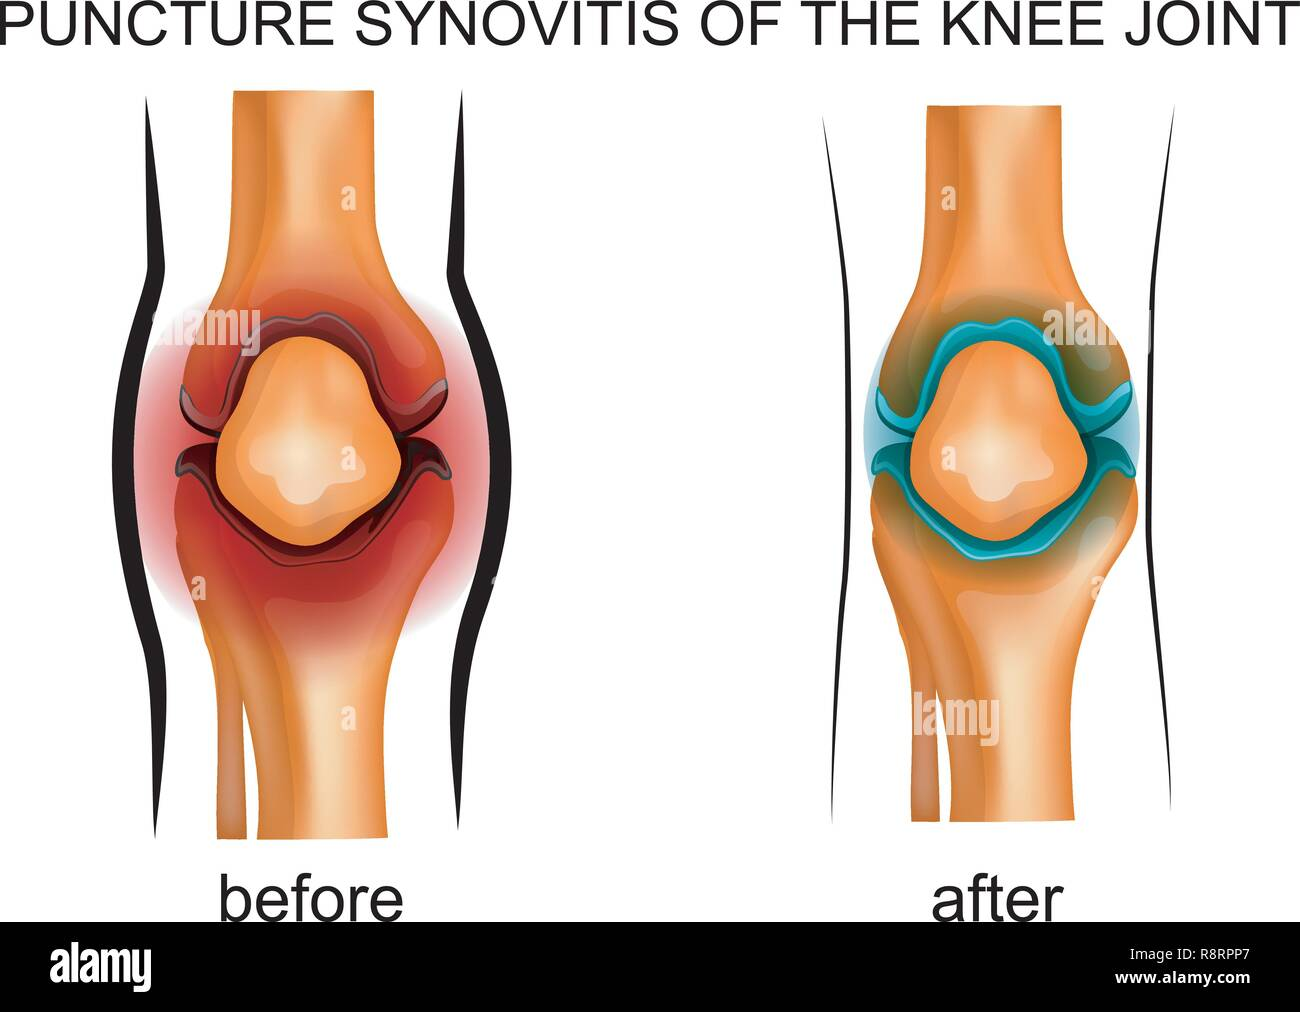 vector illustration of a puncture synovitis of the knee joint - Stock Image